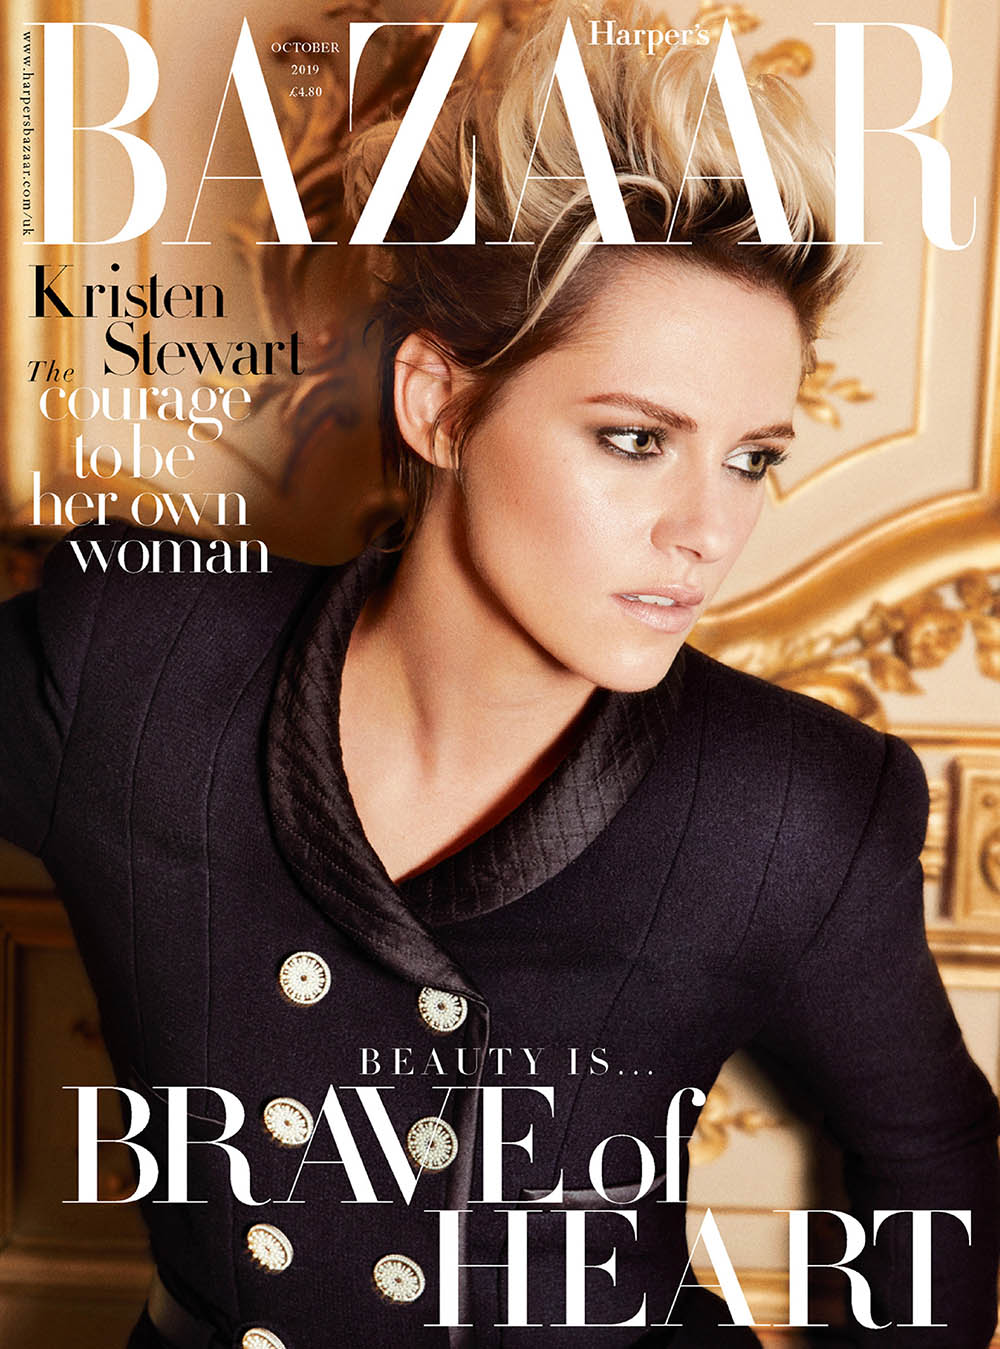 Kristen Stewart covers Harper's Bazaar UK October 2019 by Alexi Lubomirski